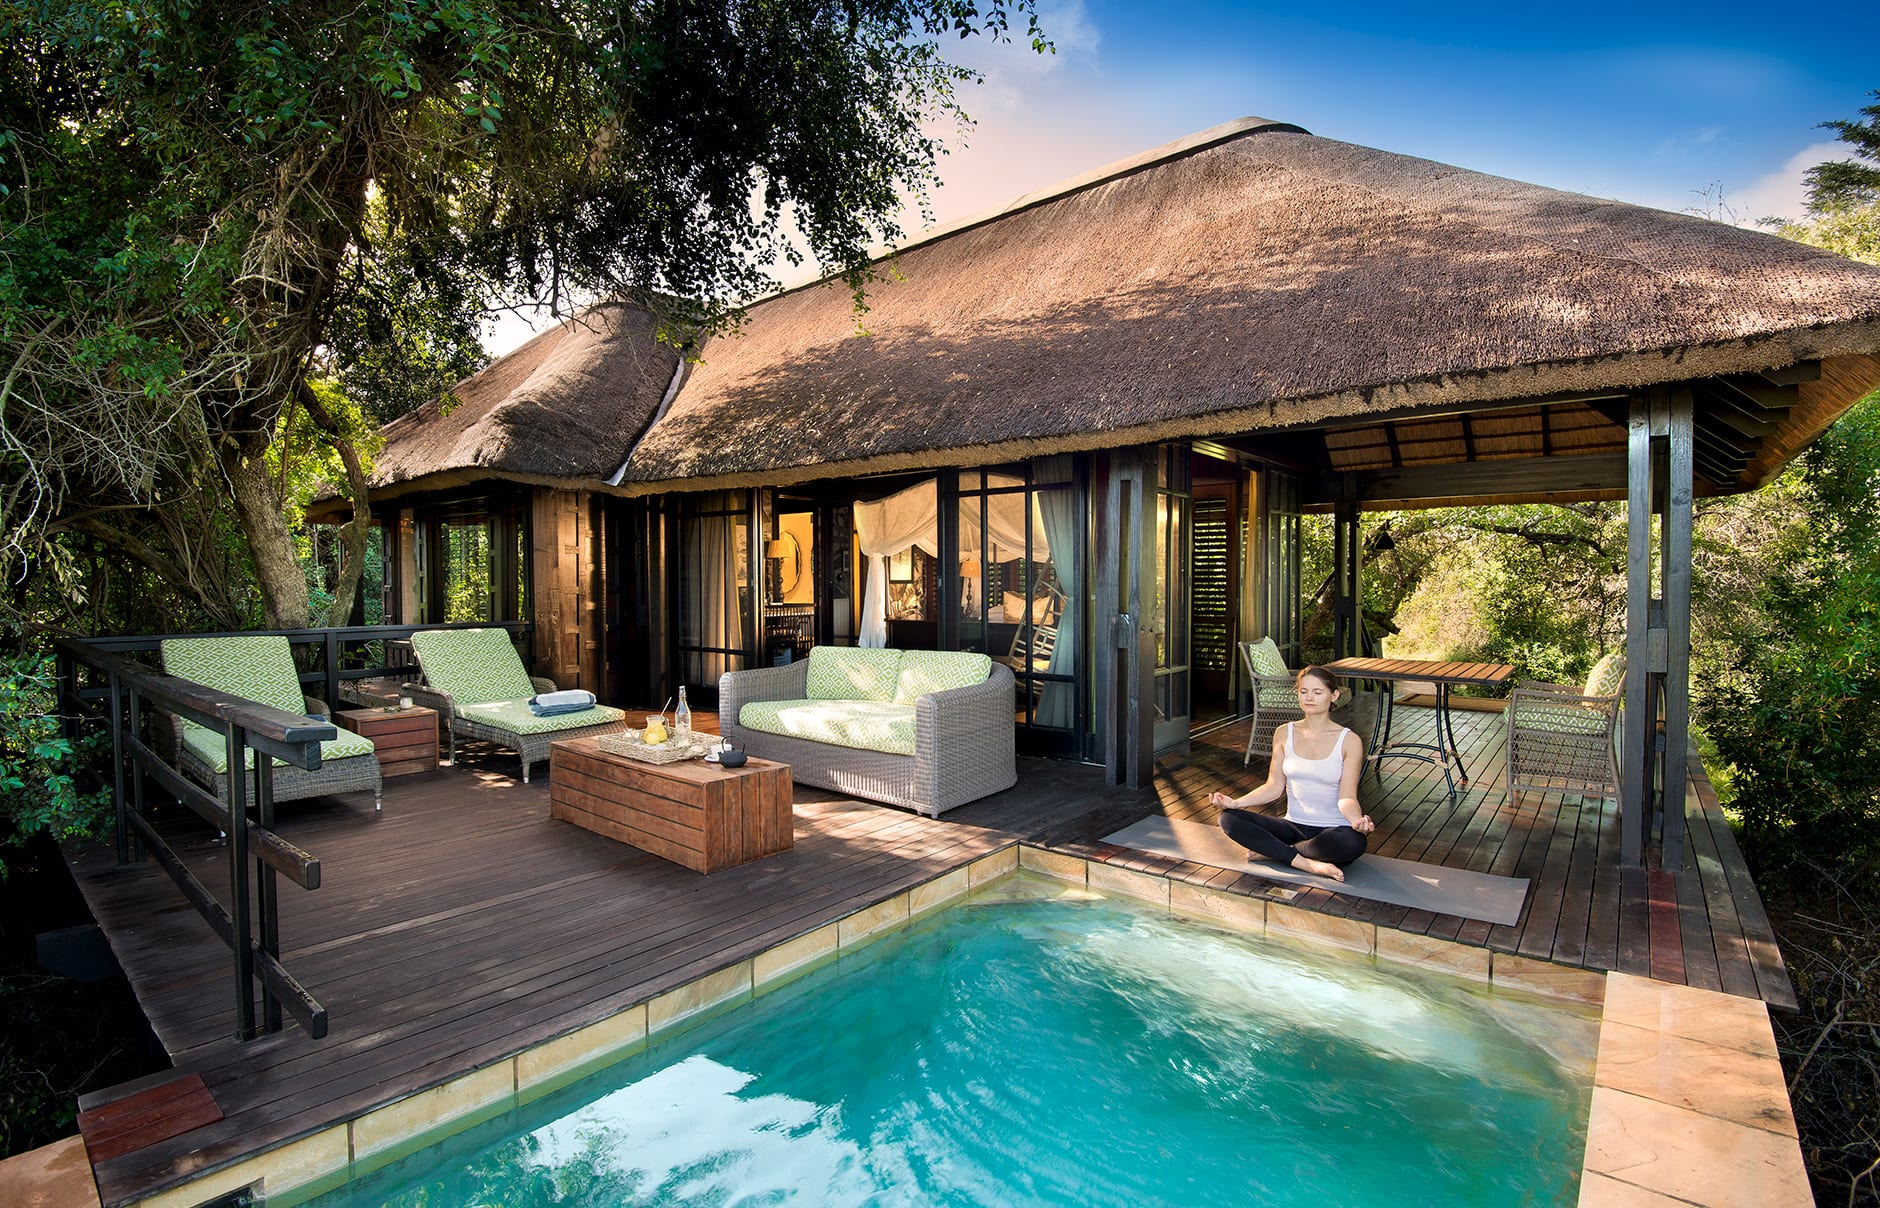 andBeyond Phinda Private Game Reserve, South Africa. Review by TravelPlusStyle. Photo © &Beyond